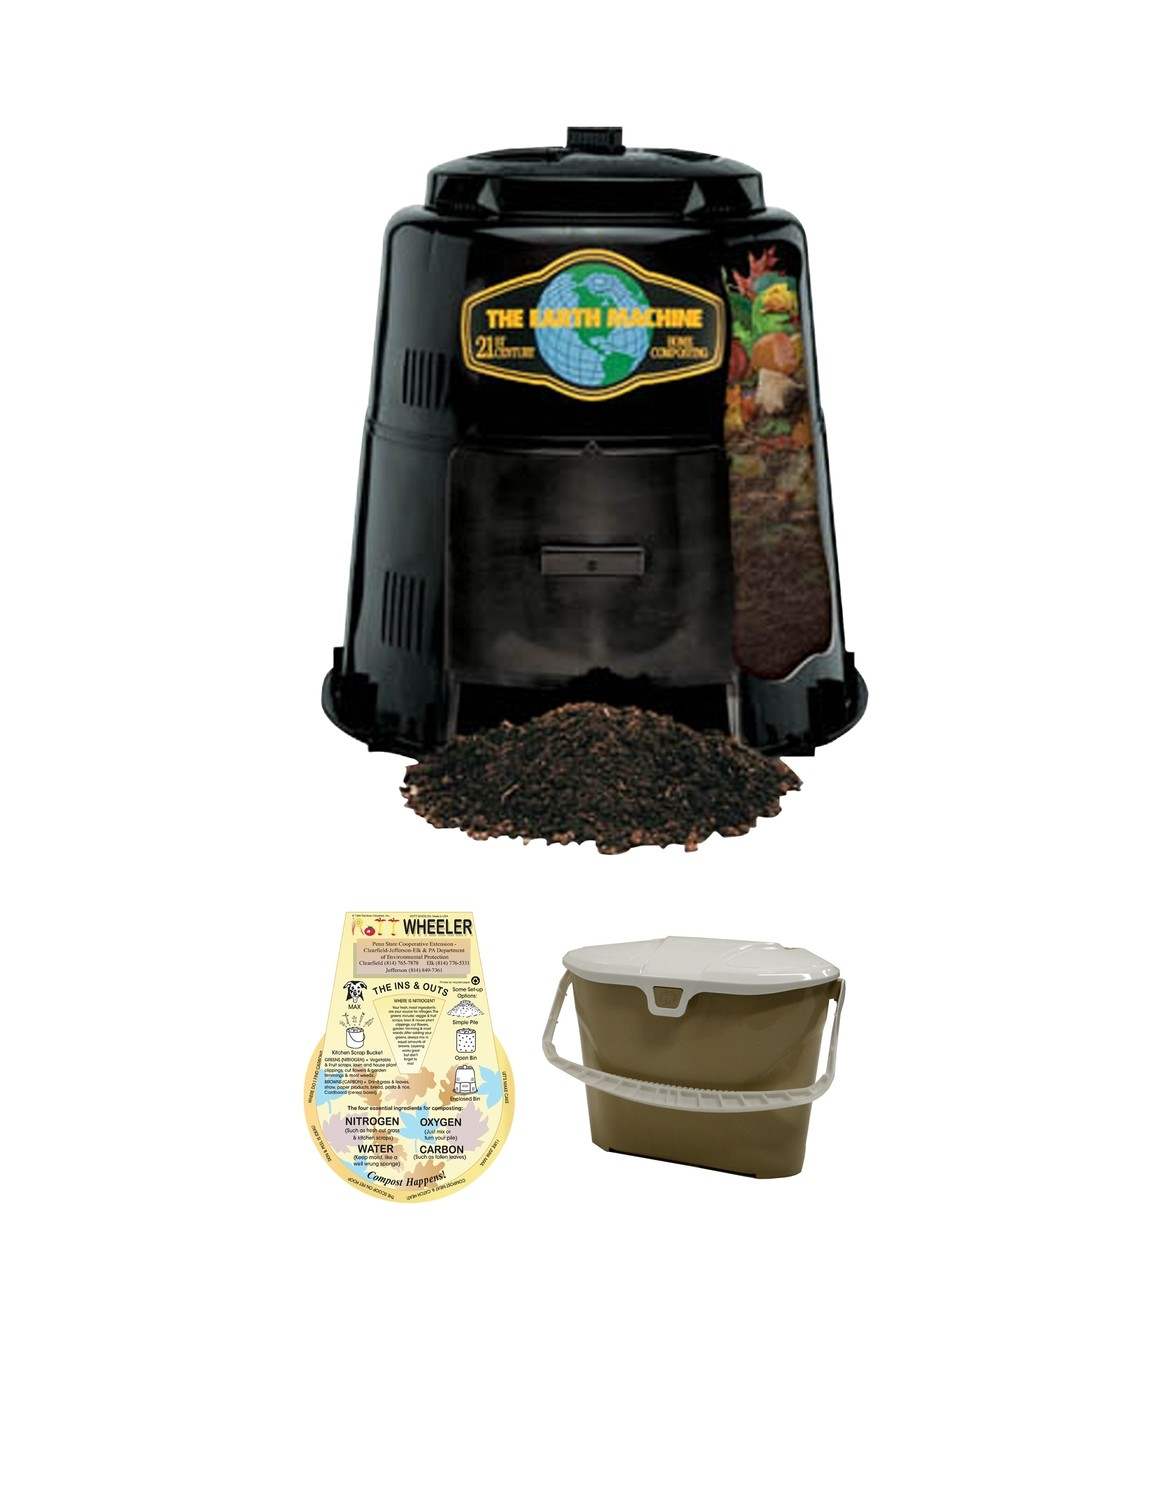 KIT 1 - Compost Bin & Collection Pail